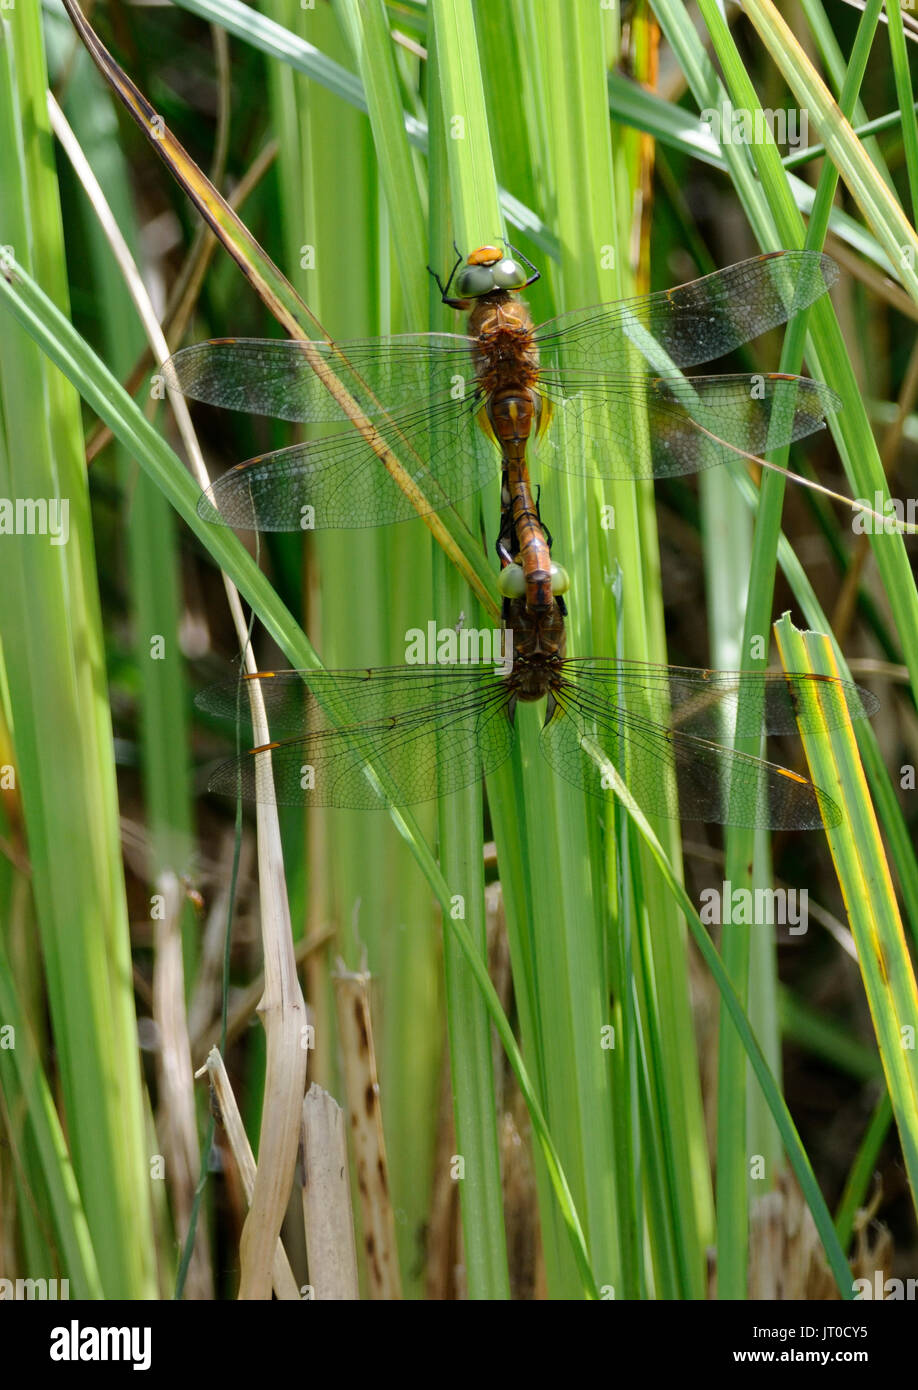 A mating pair of Norfolk hawker dragonflies ( Aeshna isosceles ) in the wheel positon - Stock Image